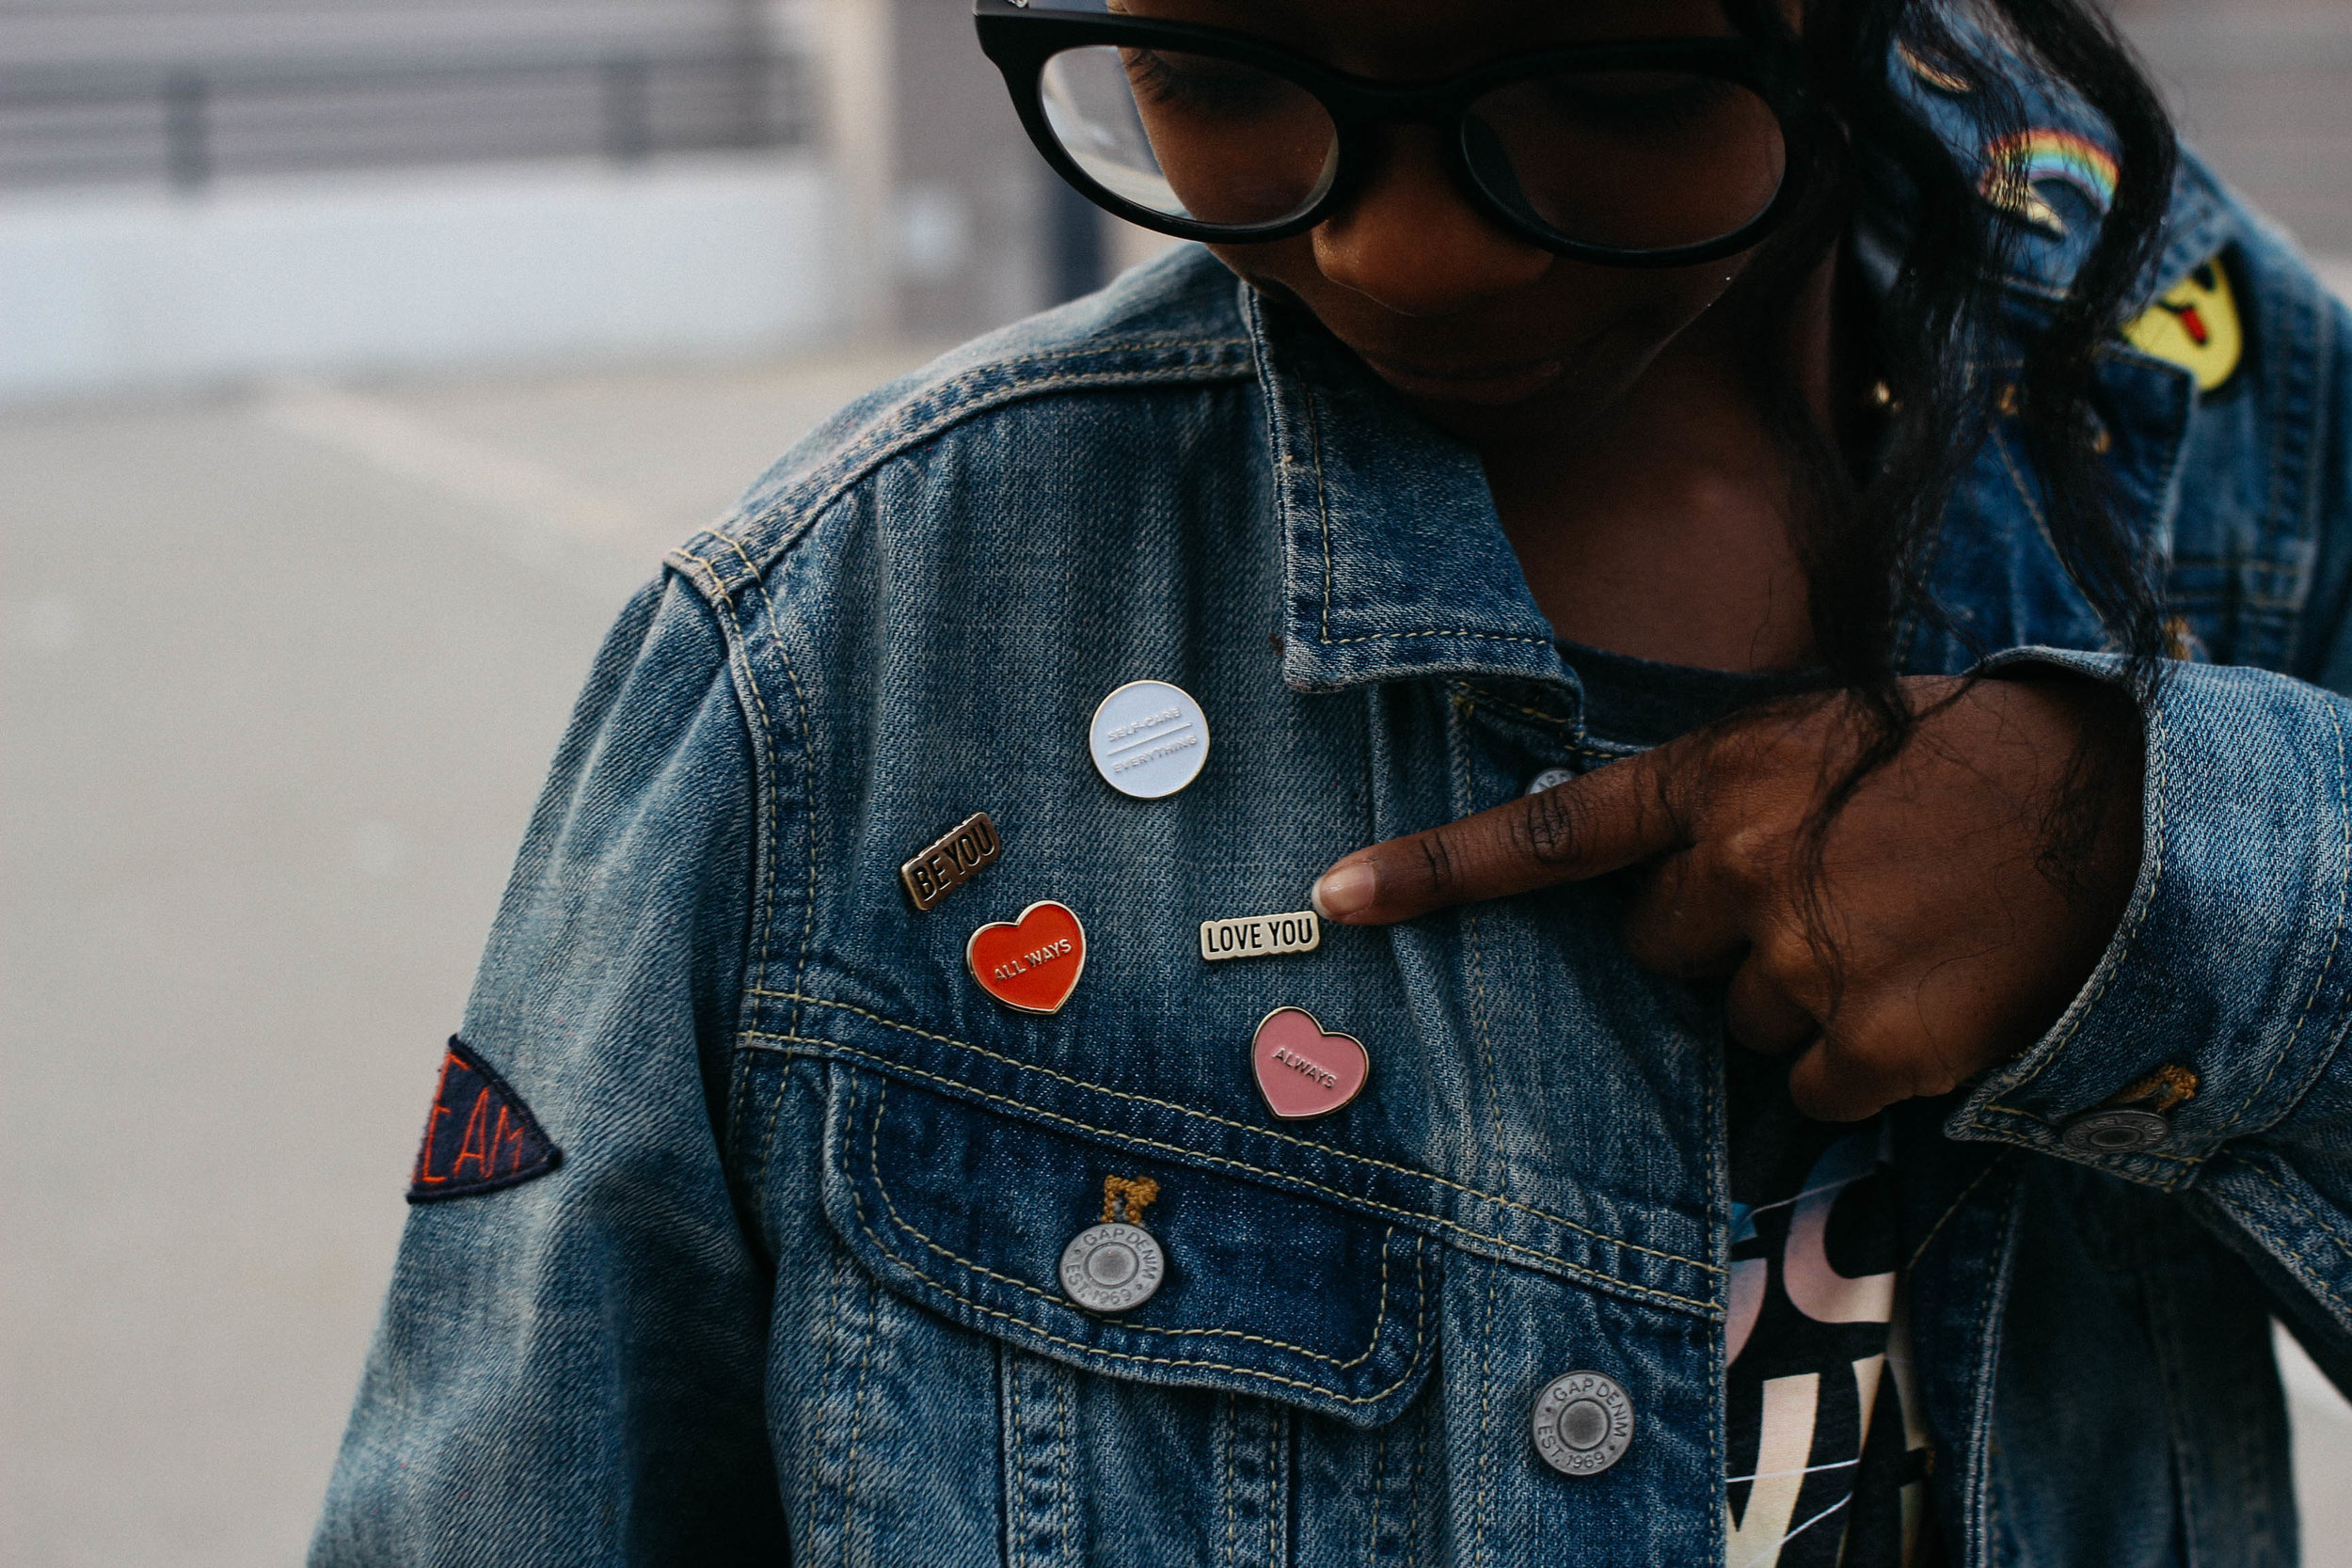 Web coolness: Self-care pins we love, help for political burnout, the new ALA book award winners and more